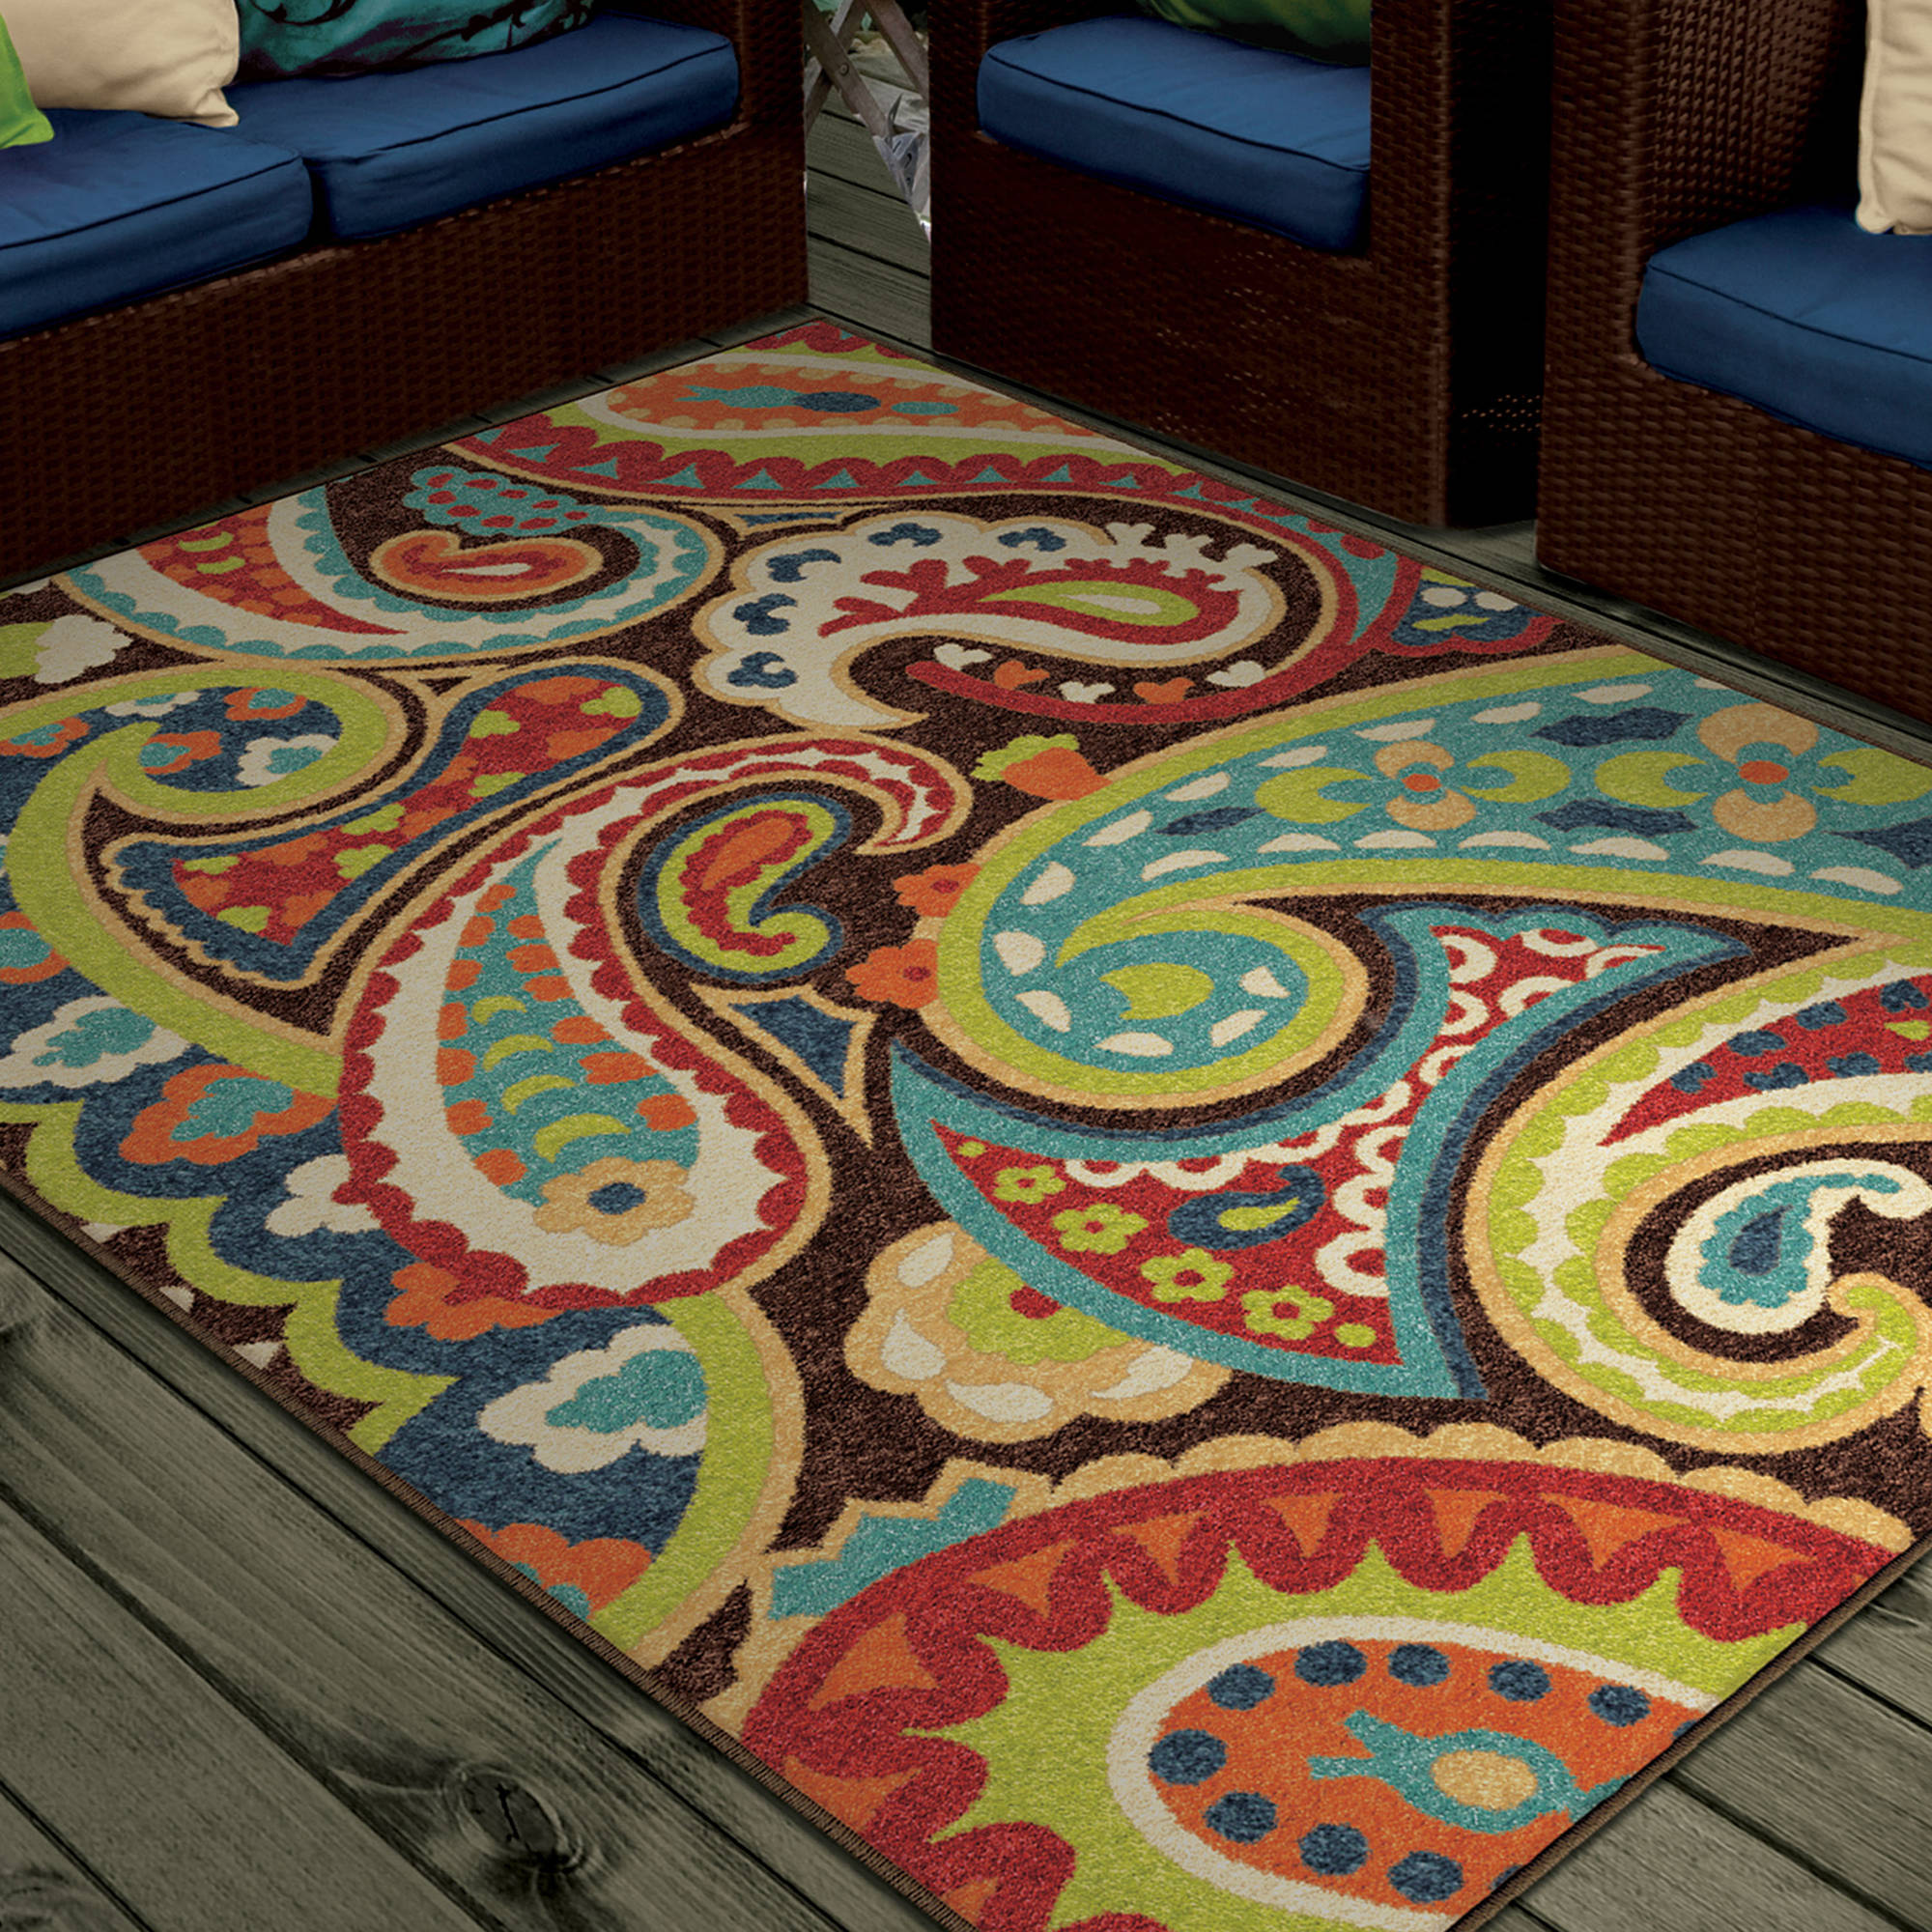 Orian Rugs Bright Colors Paisley Monteray Area Rug Or Runner. Product  Variants Selector. Multicolor